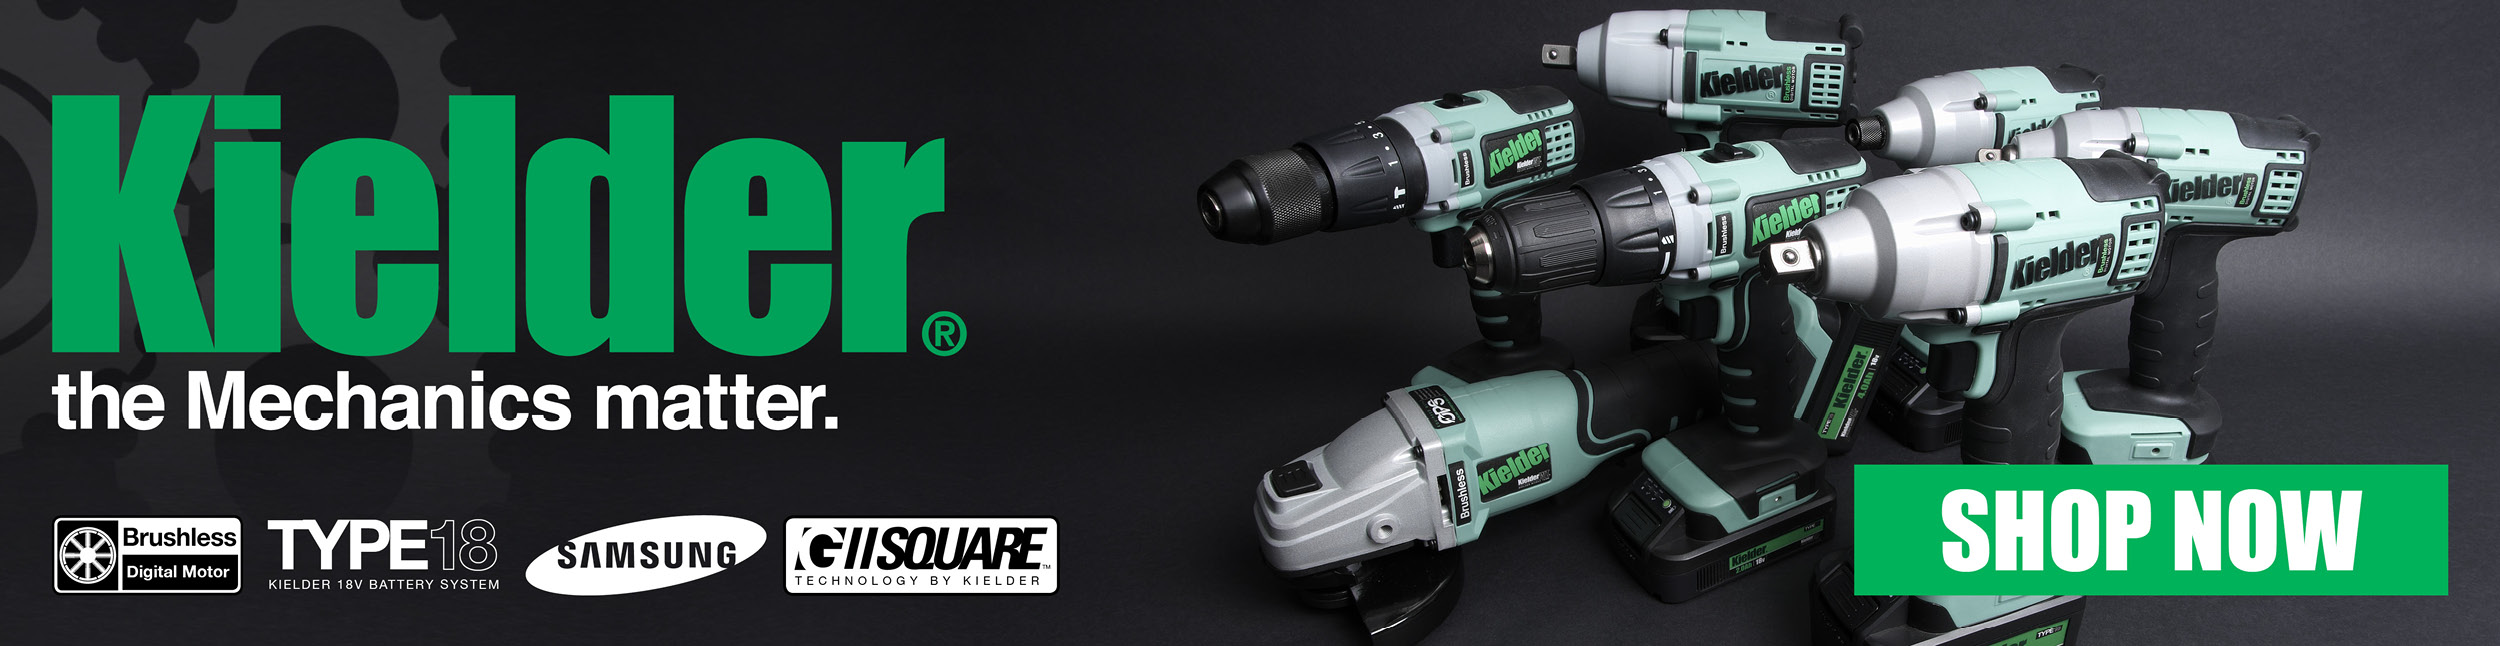 Kielder Cordless Power Tools